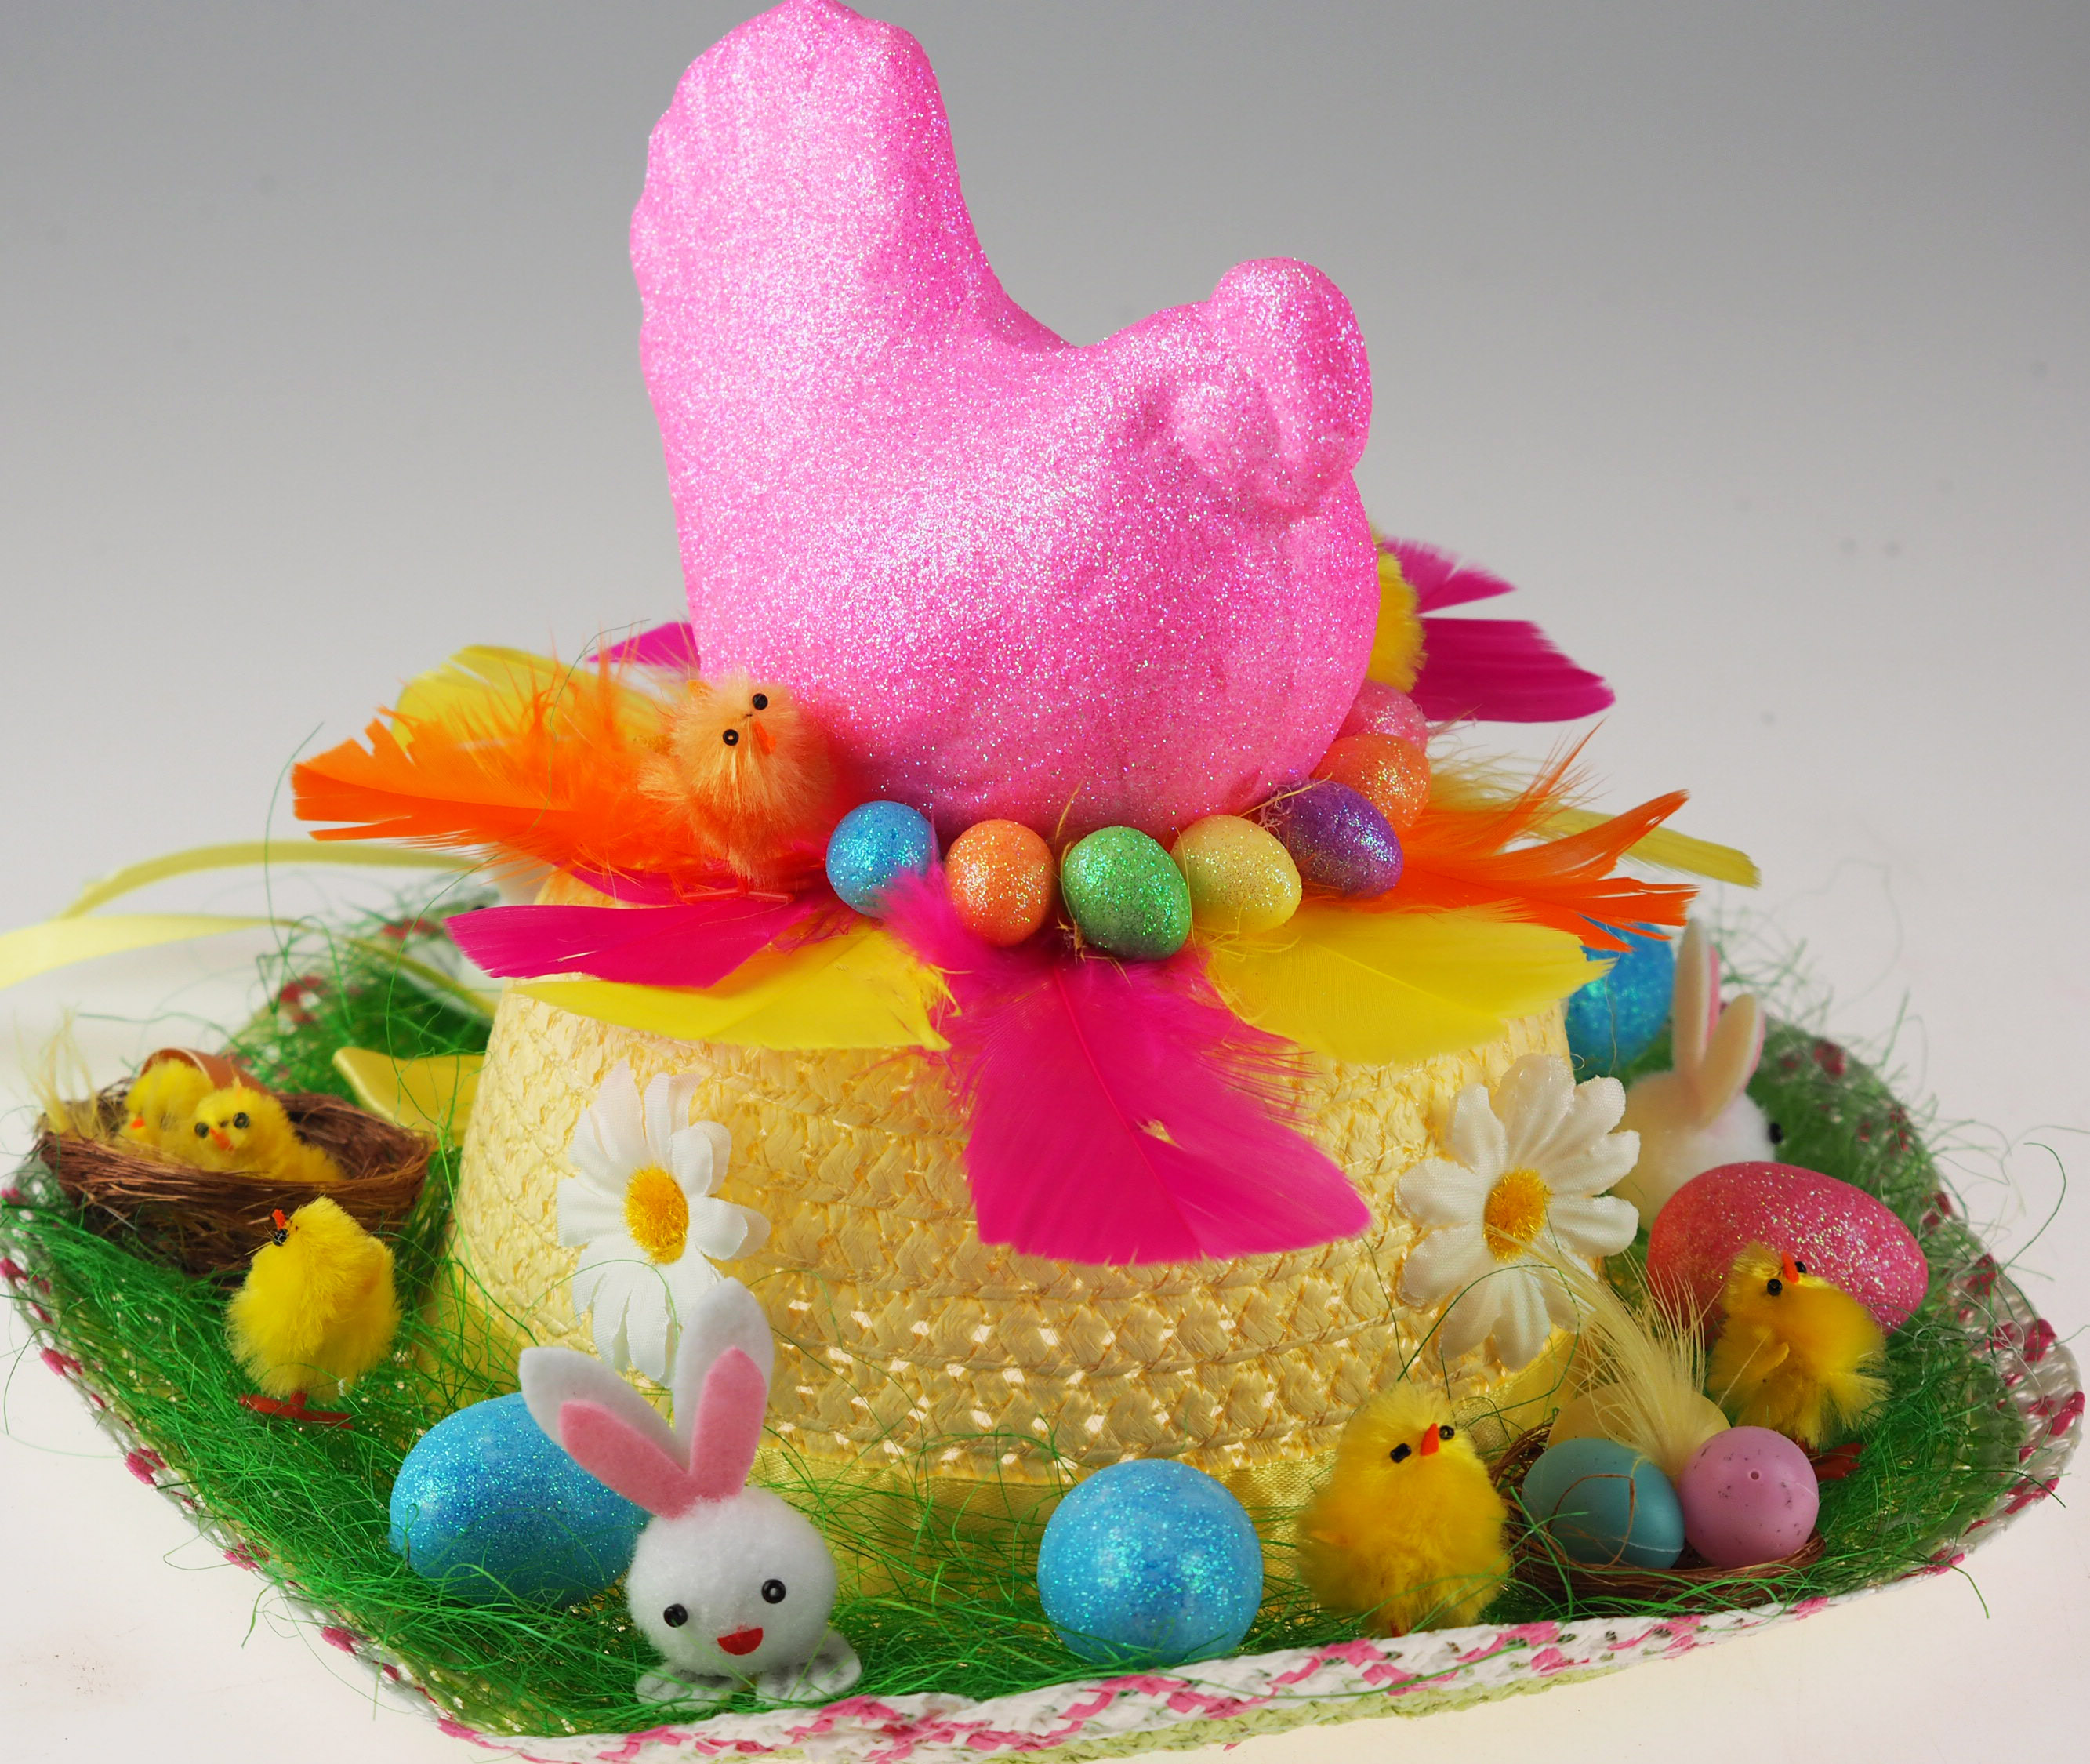 XL Foam Yellow Glitter Hen Easter Centre Piece Decoration Art Craft Use